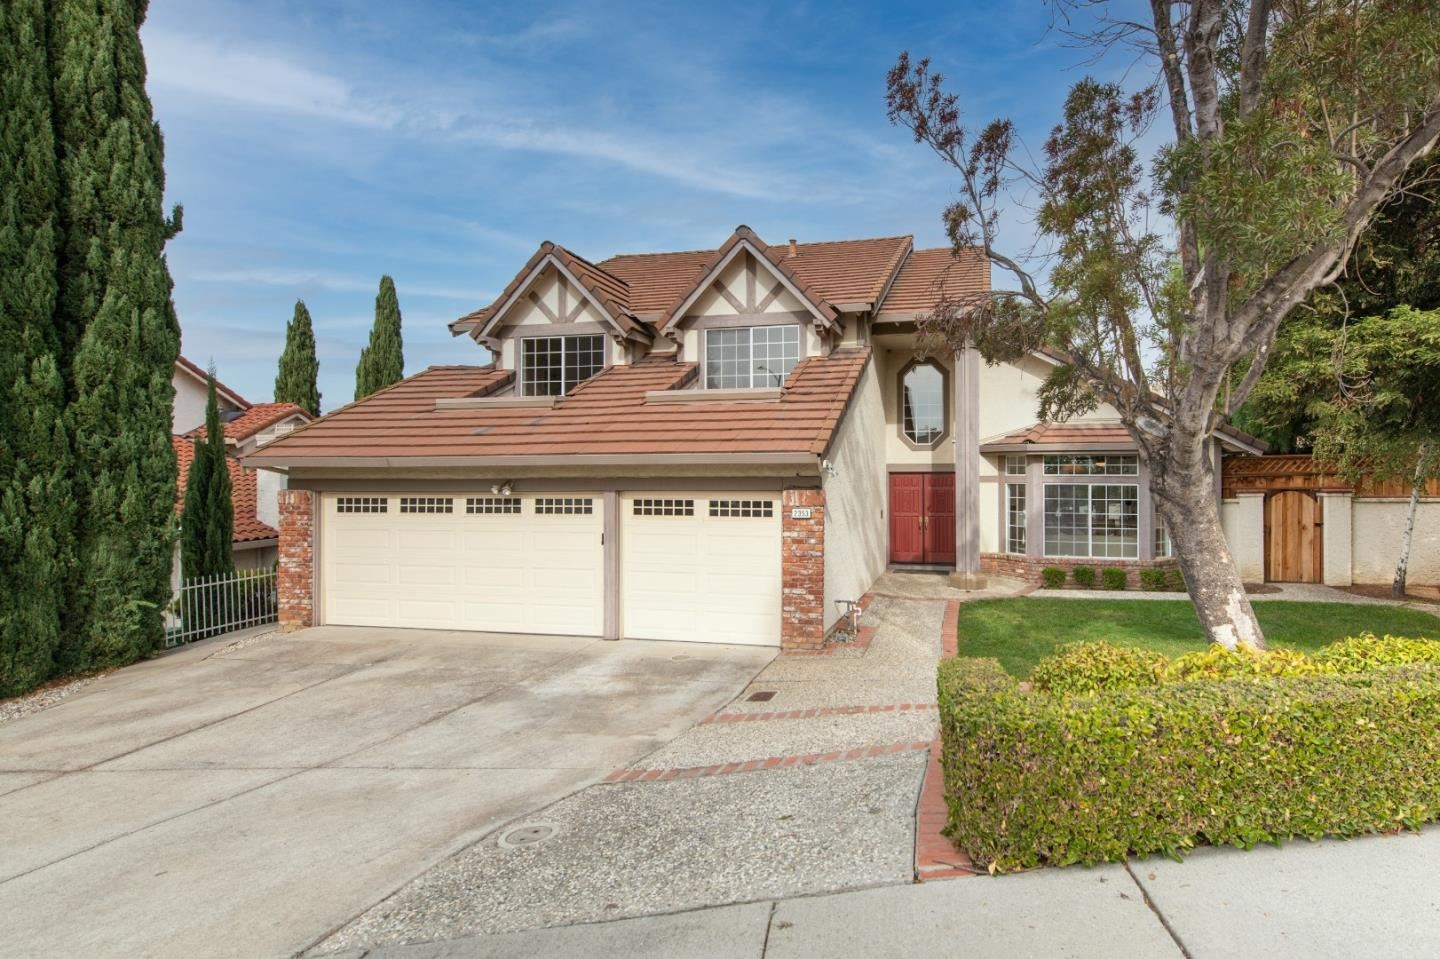 Photo for 2353 Glenview DR, MILPITAS, CA 95035 (MLS # ML81820936)